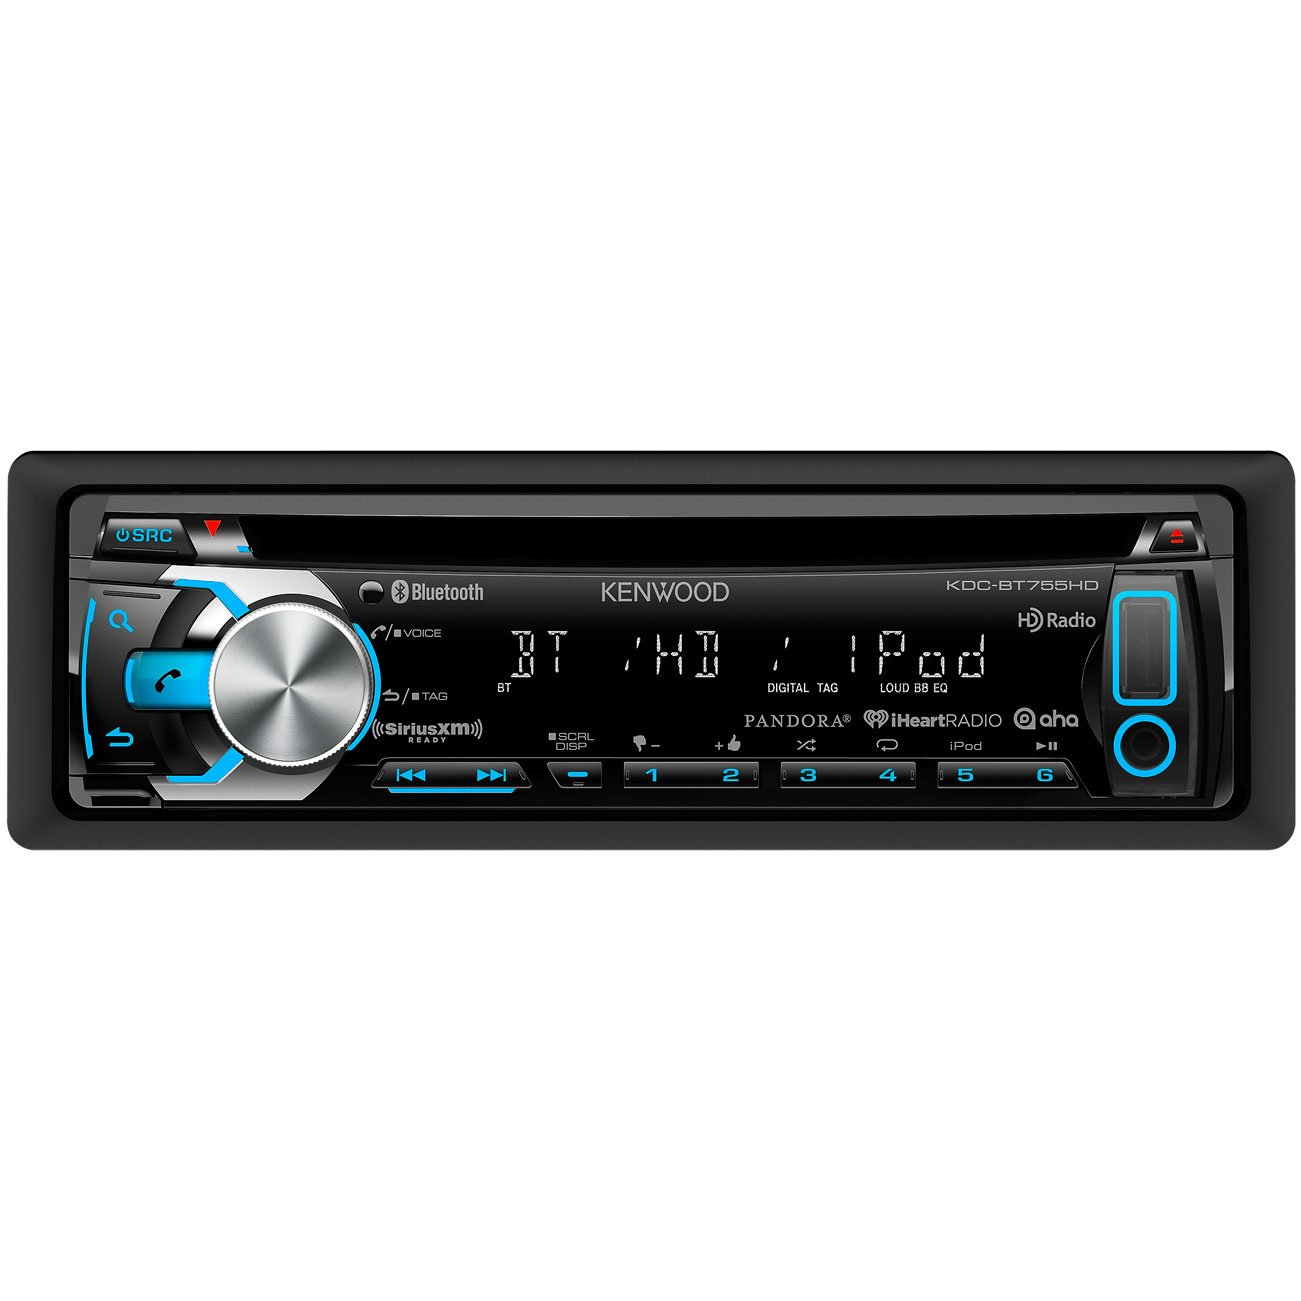 Wiring diagram kenwood cd player with bluetooth electrical work amazon com kenwood kdc bt755hd single din in dash cd siriusxm tm rh amazon com kenwood kdc mp208 wiring diagram kenwood kdc wiring harness diagram asfbconference2016 Choice Image